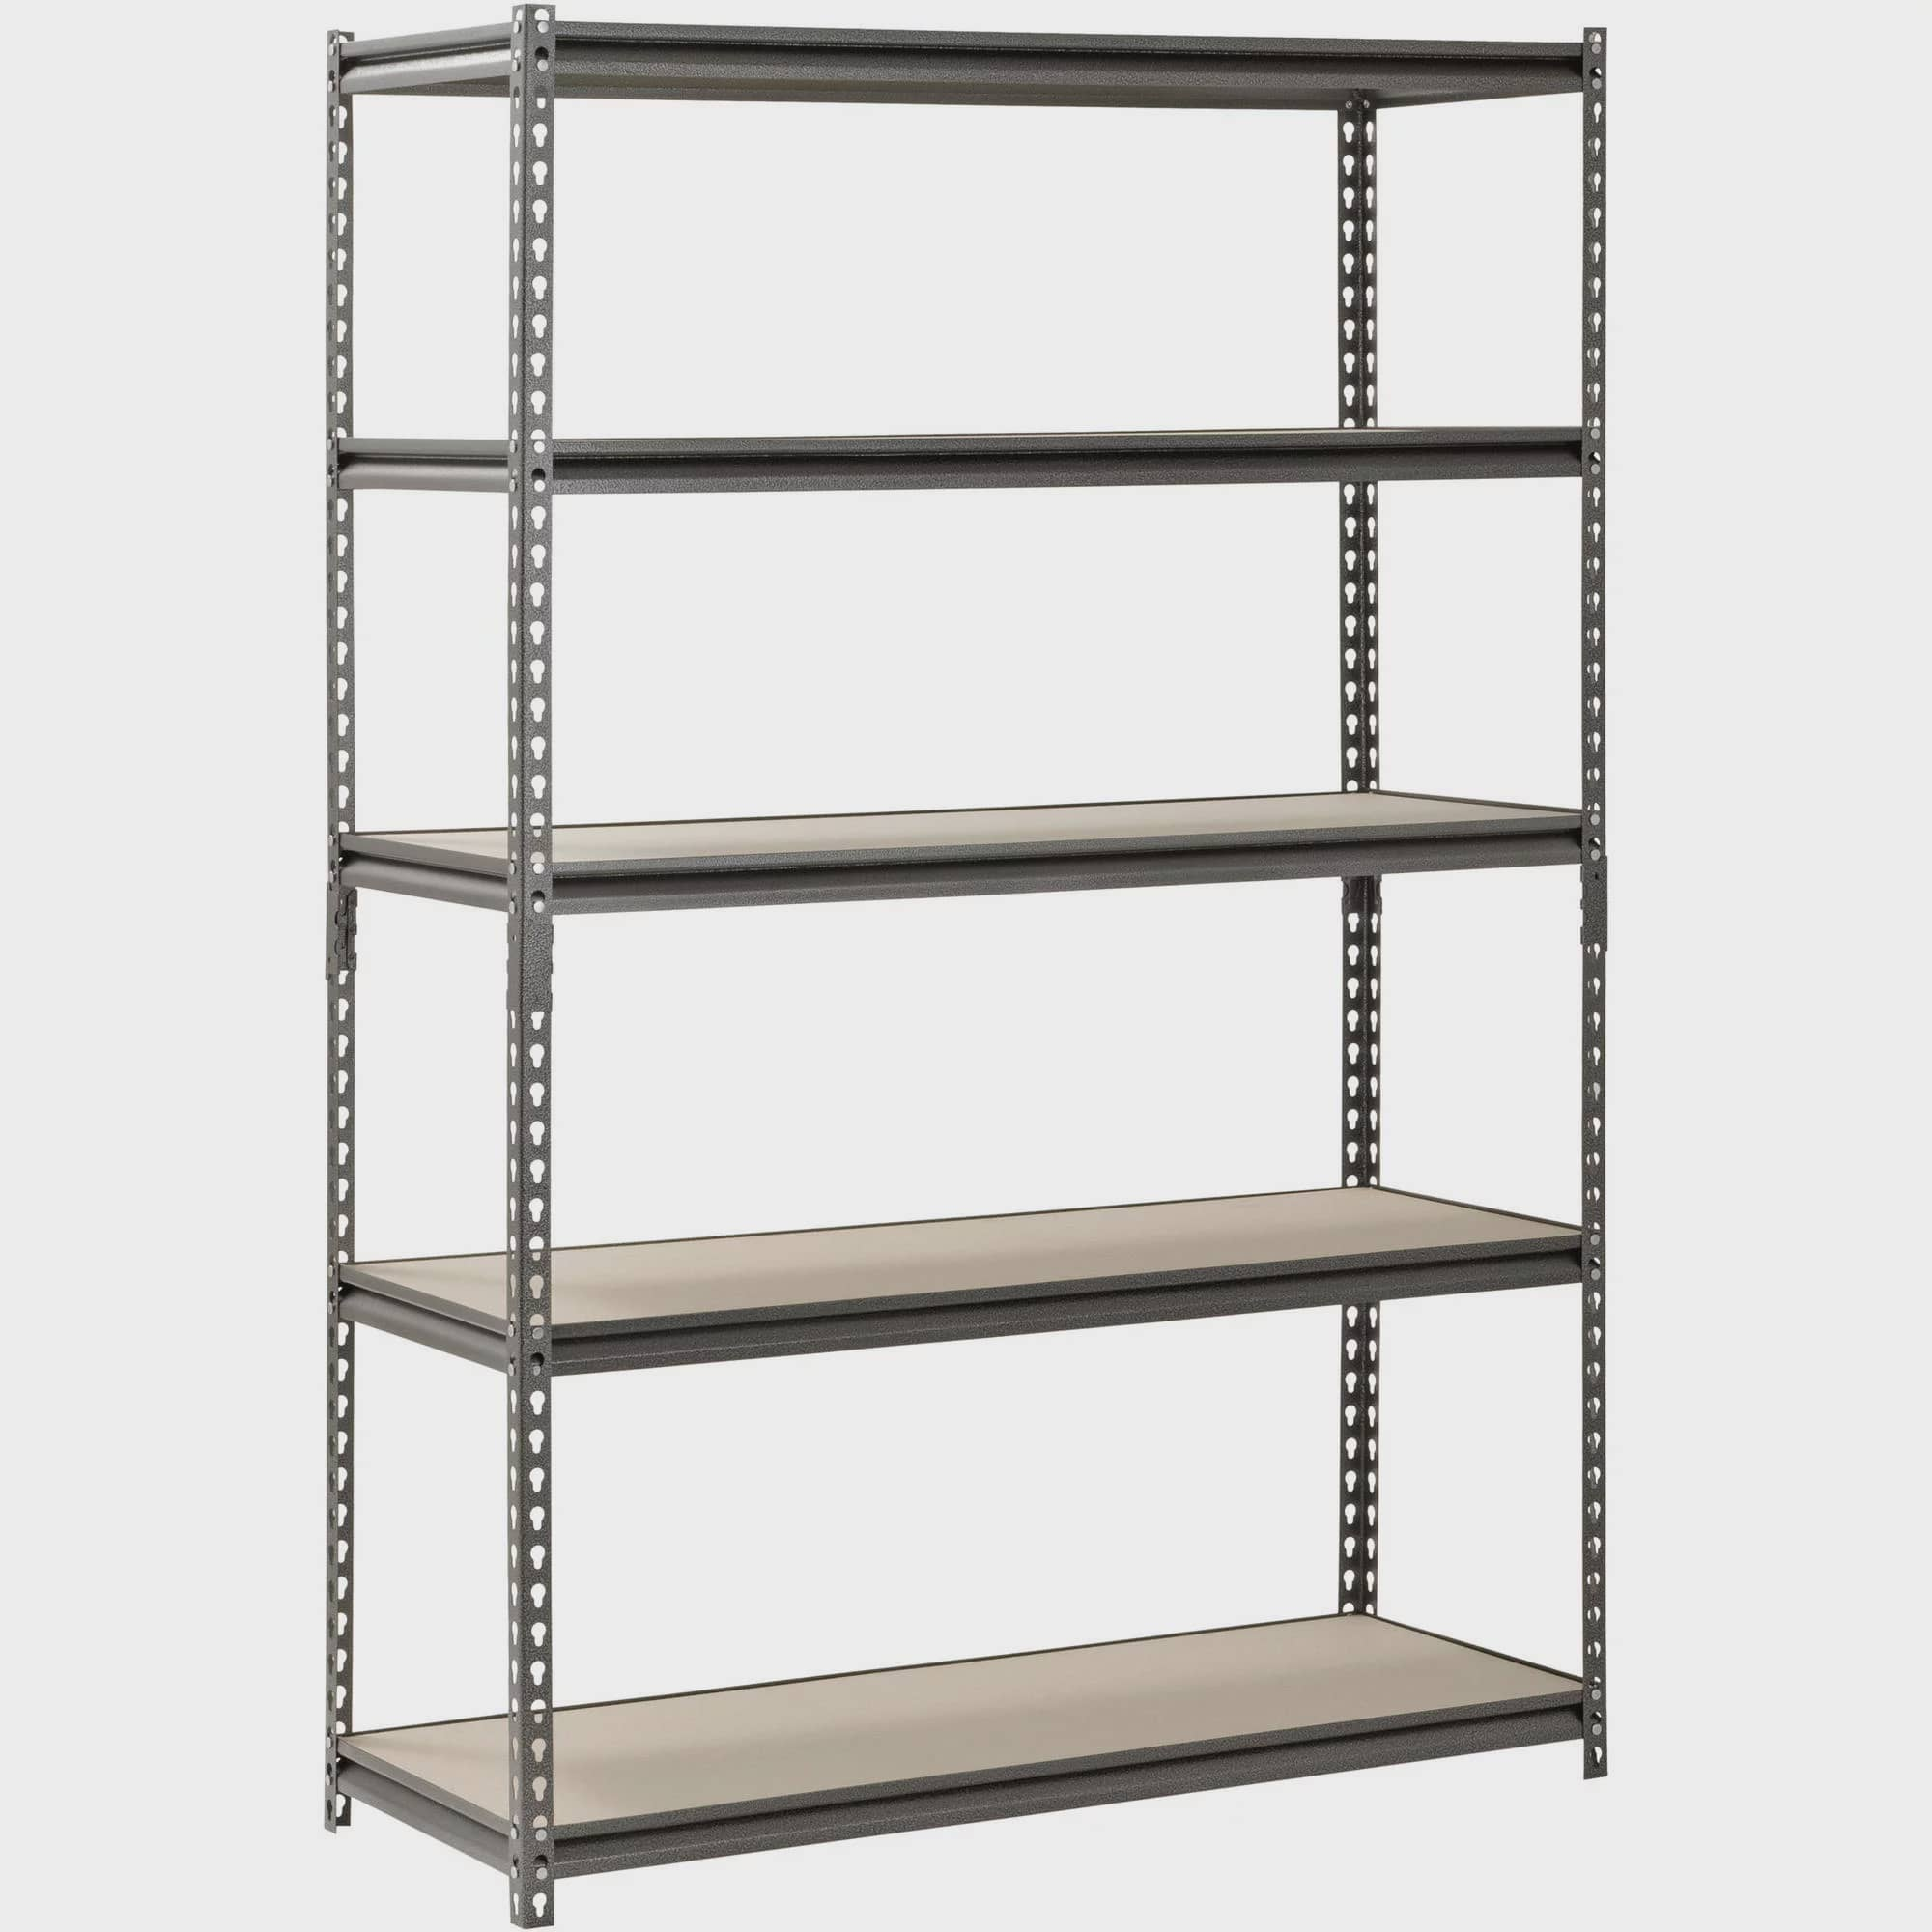 simwinliang black rack a connected for row store boltless storeroom storage design steel your pages room racks shelf com